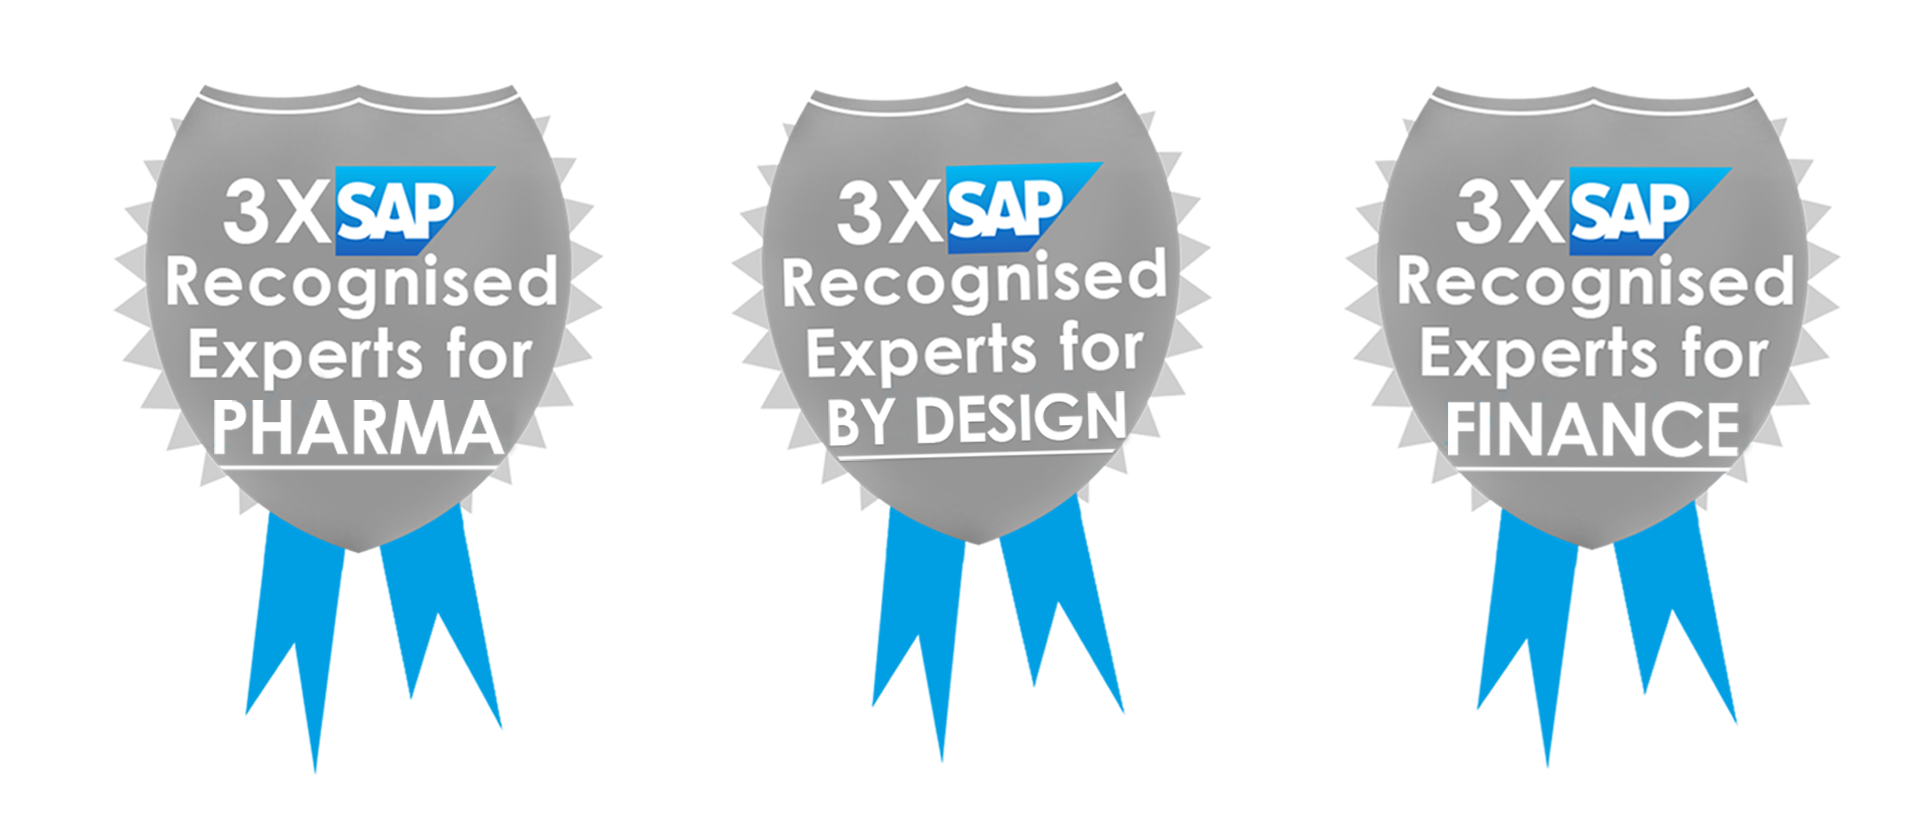 Proving our expertise Cofficient is 3 times recognised experts by SAP